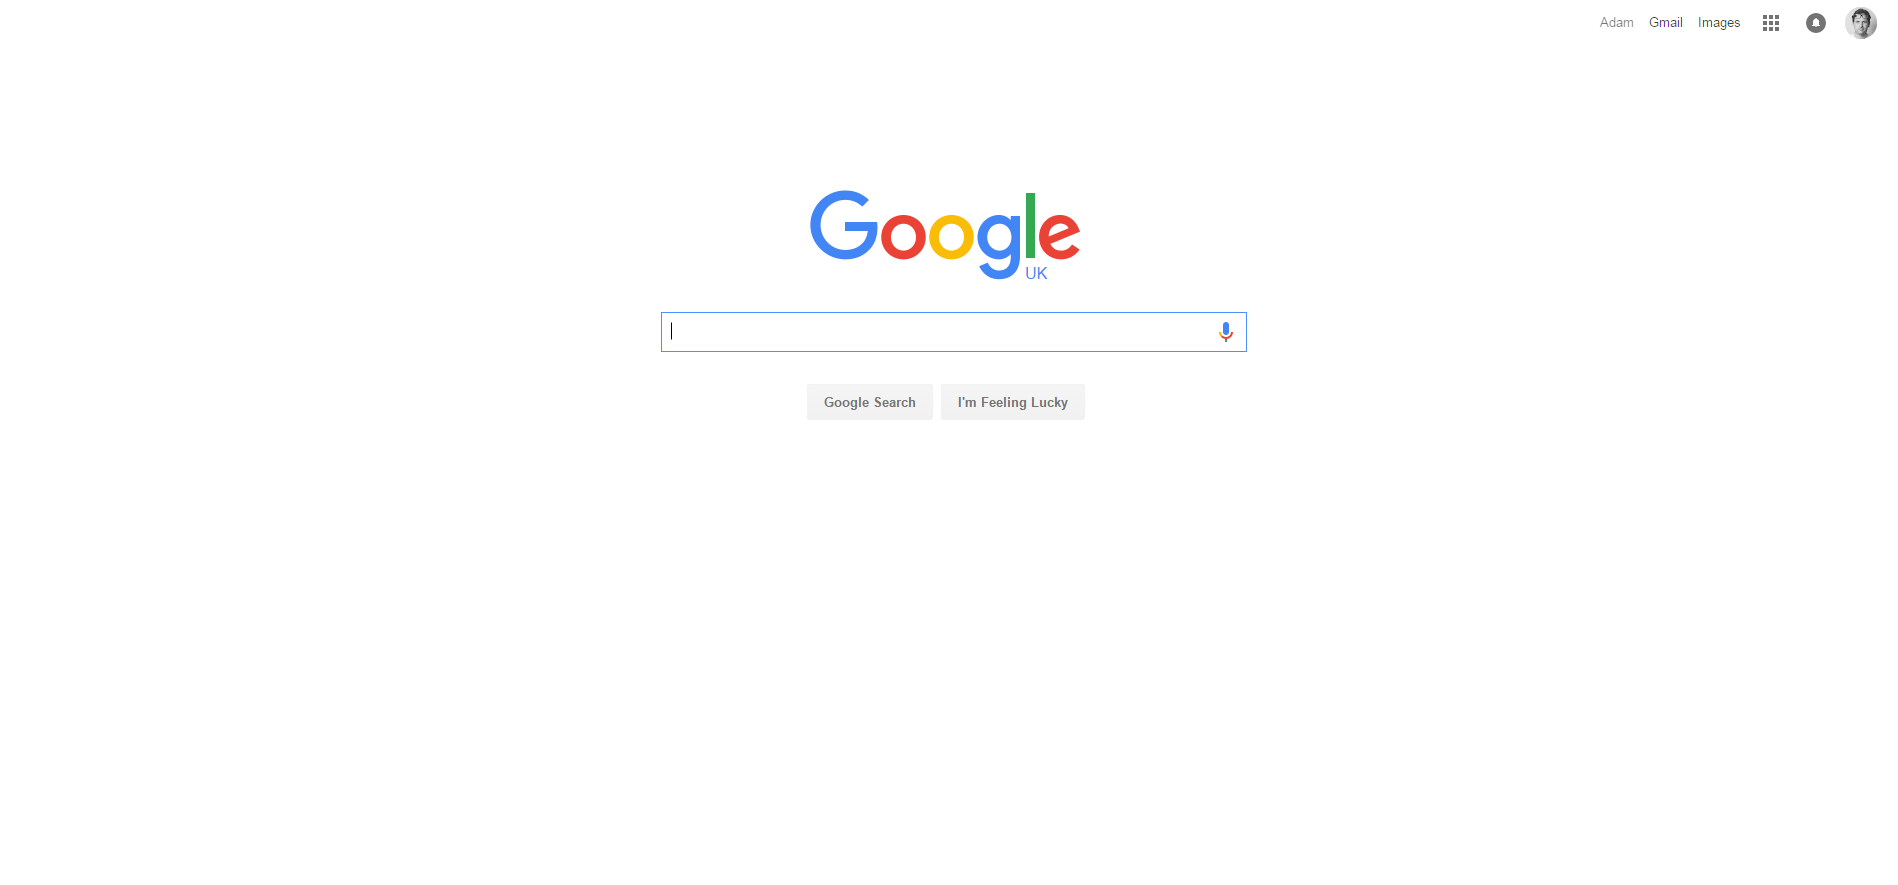 google-whitespace-example.png